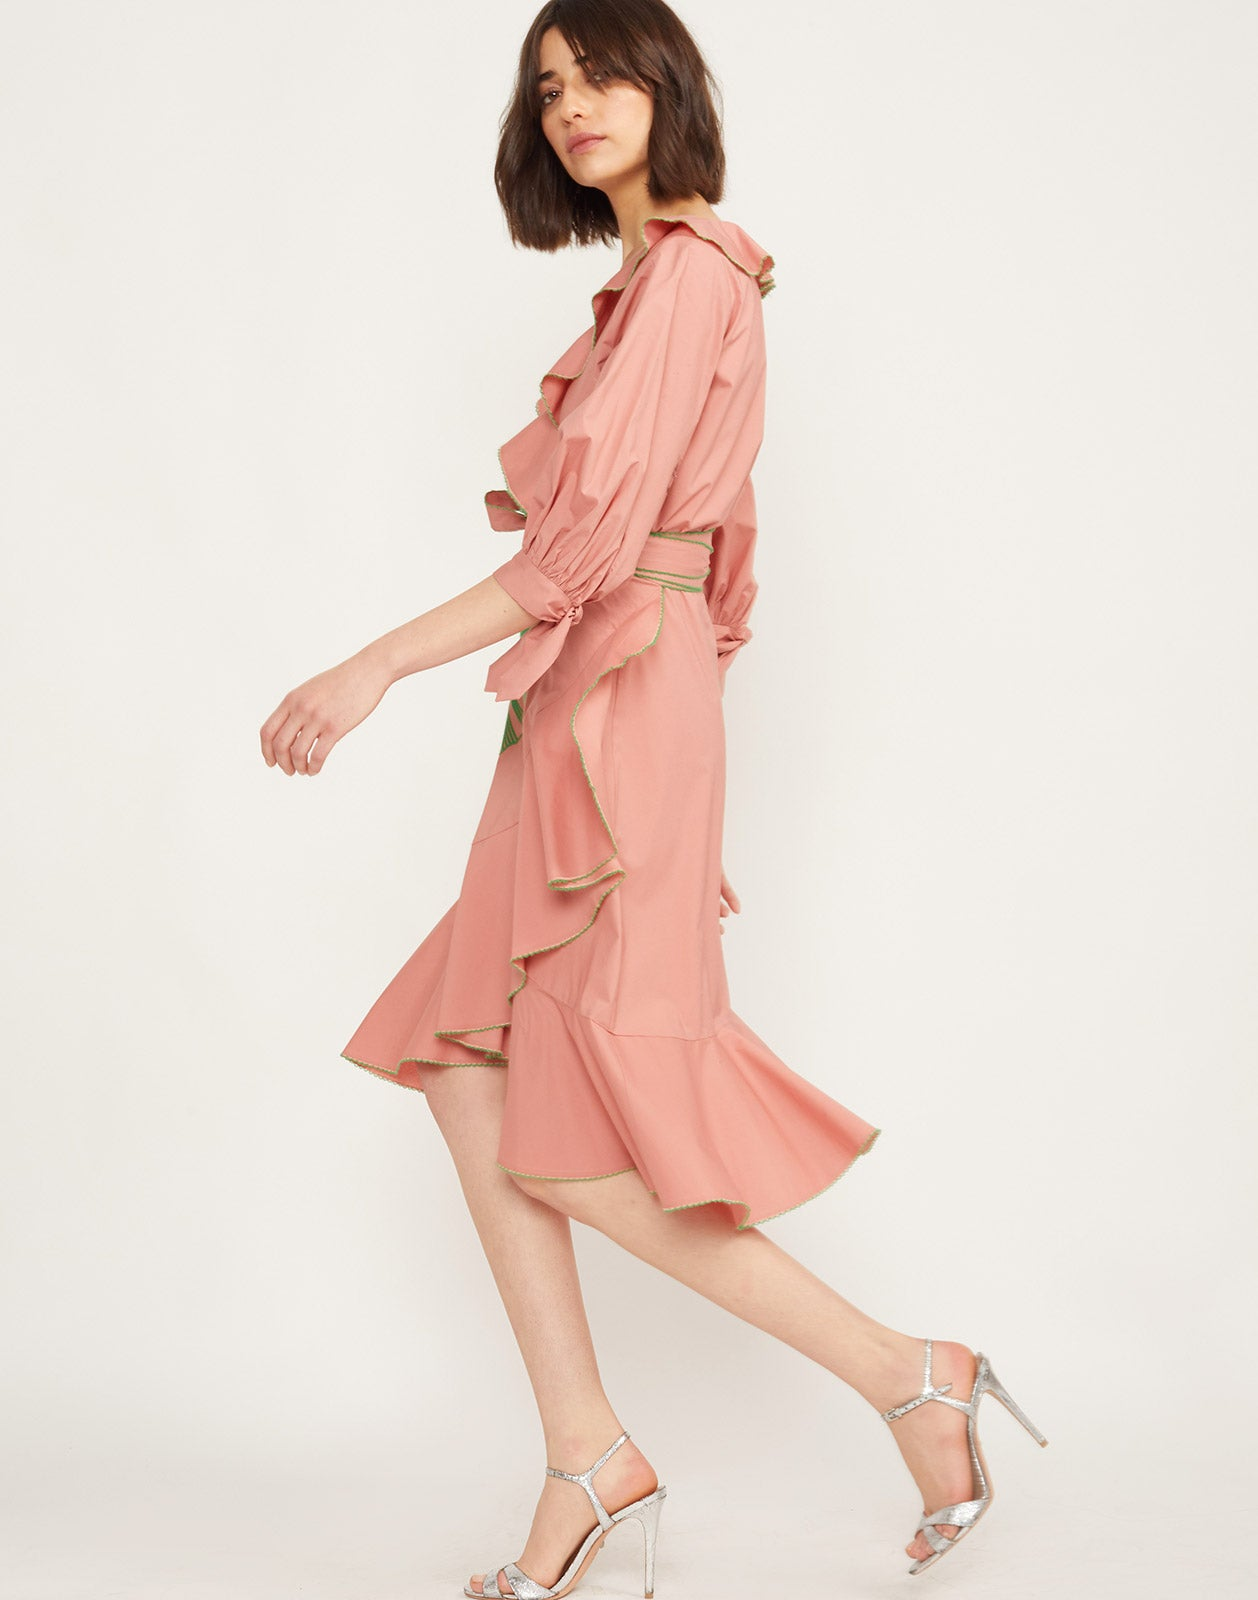 Alternate side view model wearing Cleo Embroidered Wrap Dress